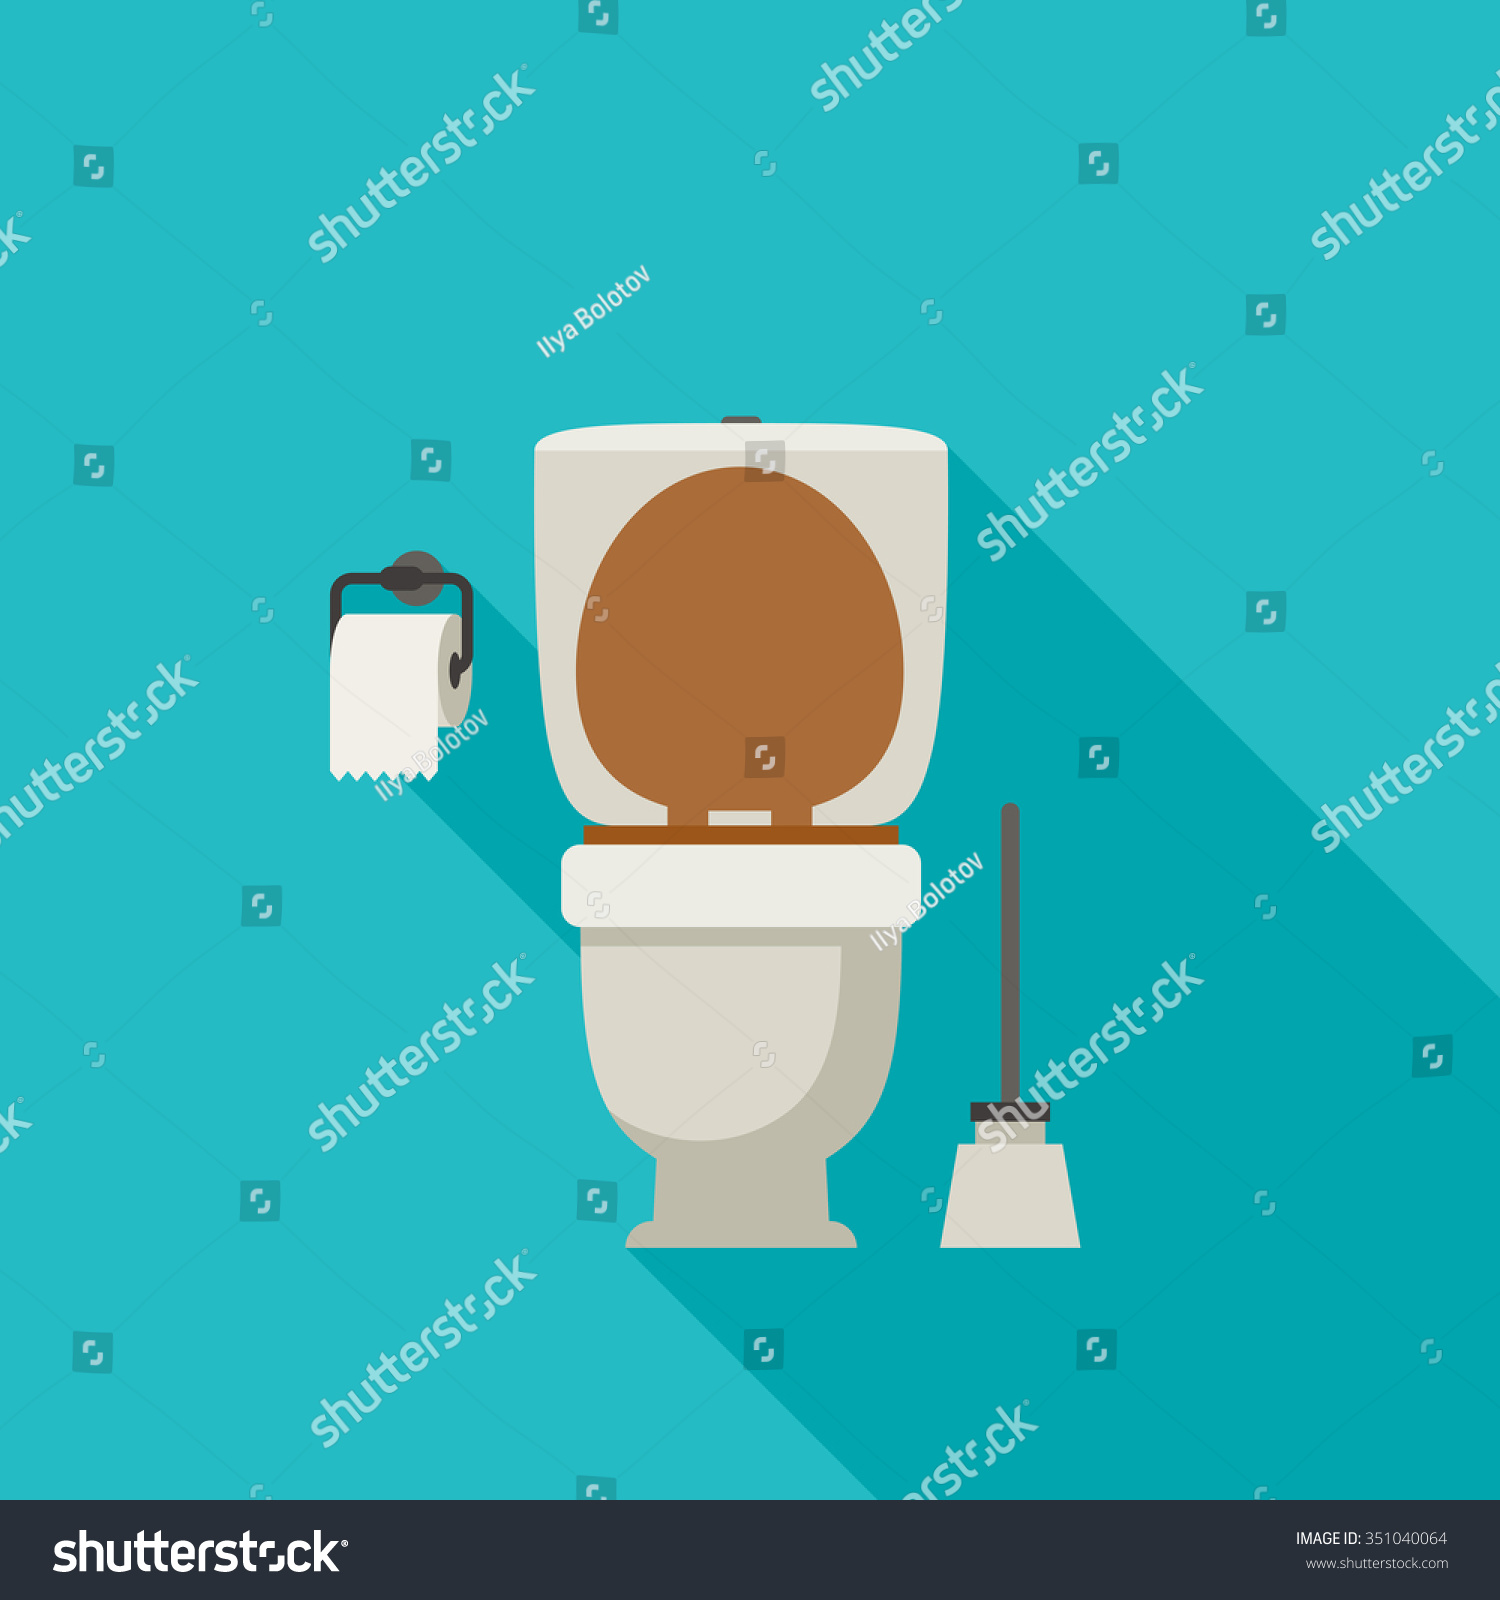 Toilet Flat Illustration Toilet Paper Toilet Stock Vector